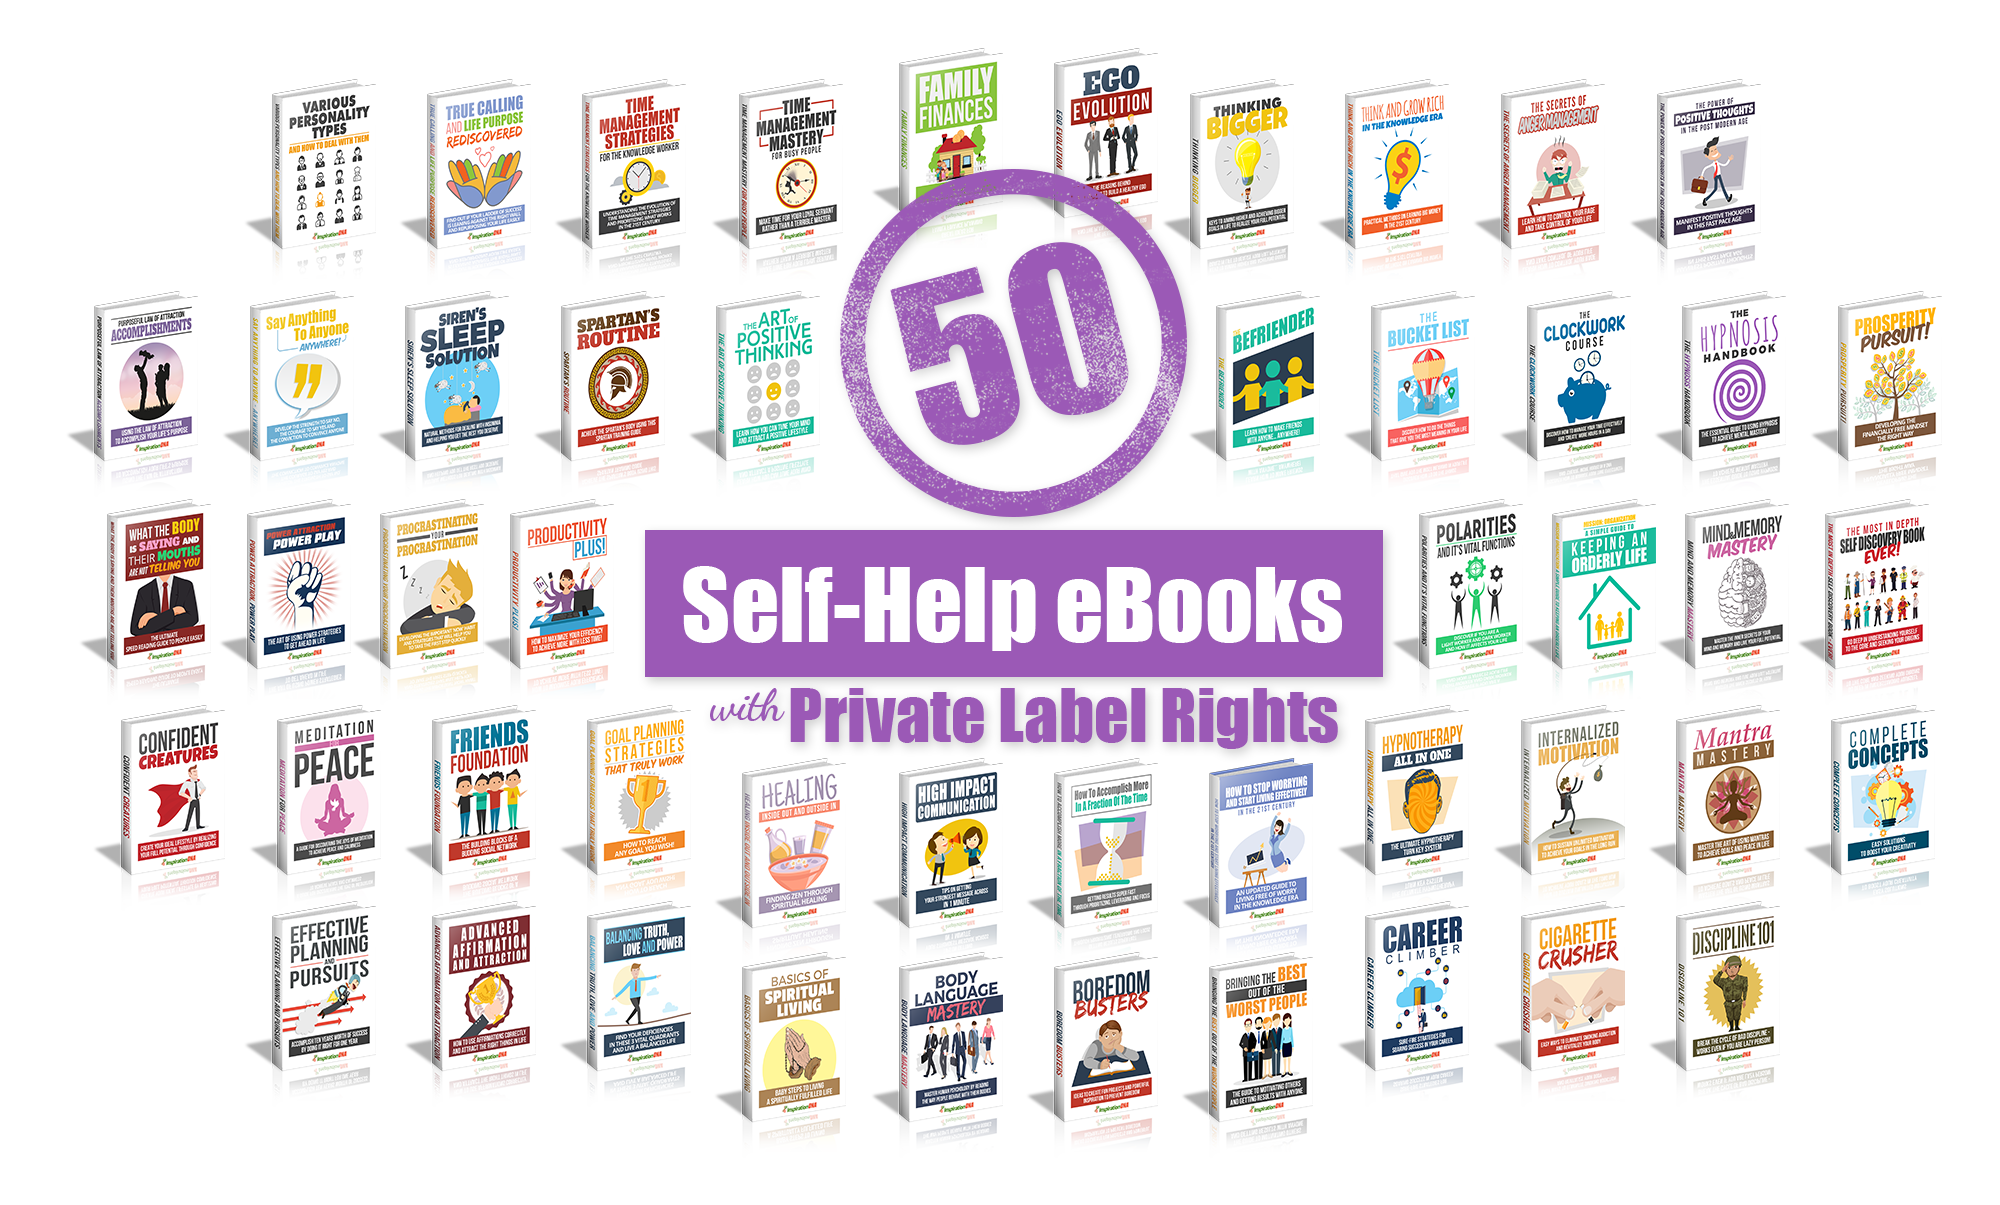 Plr jackpot jv page plr to 30 niche ebooks fandeluxe Image collections